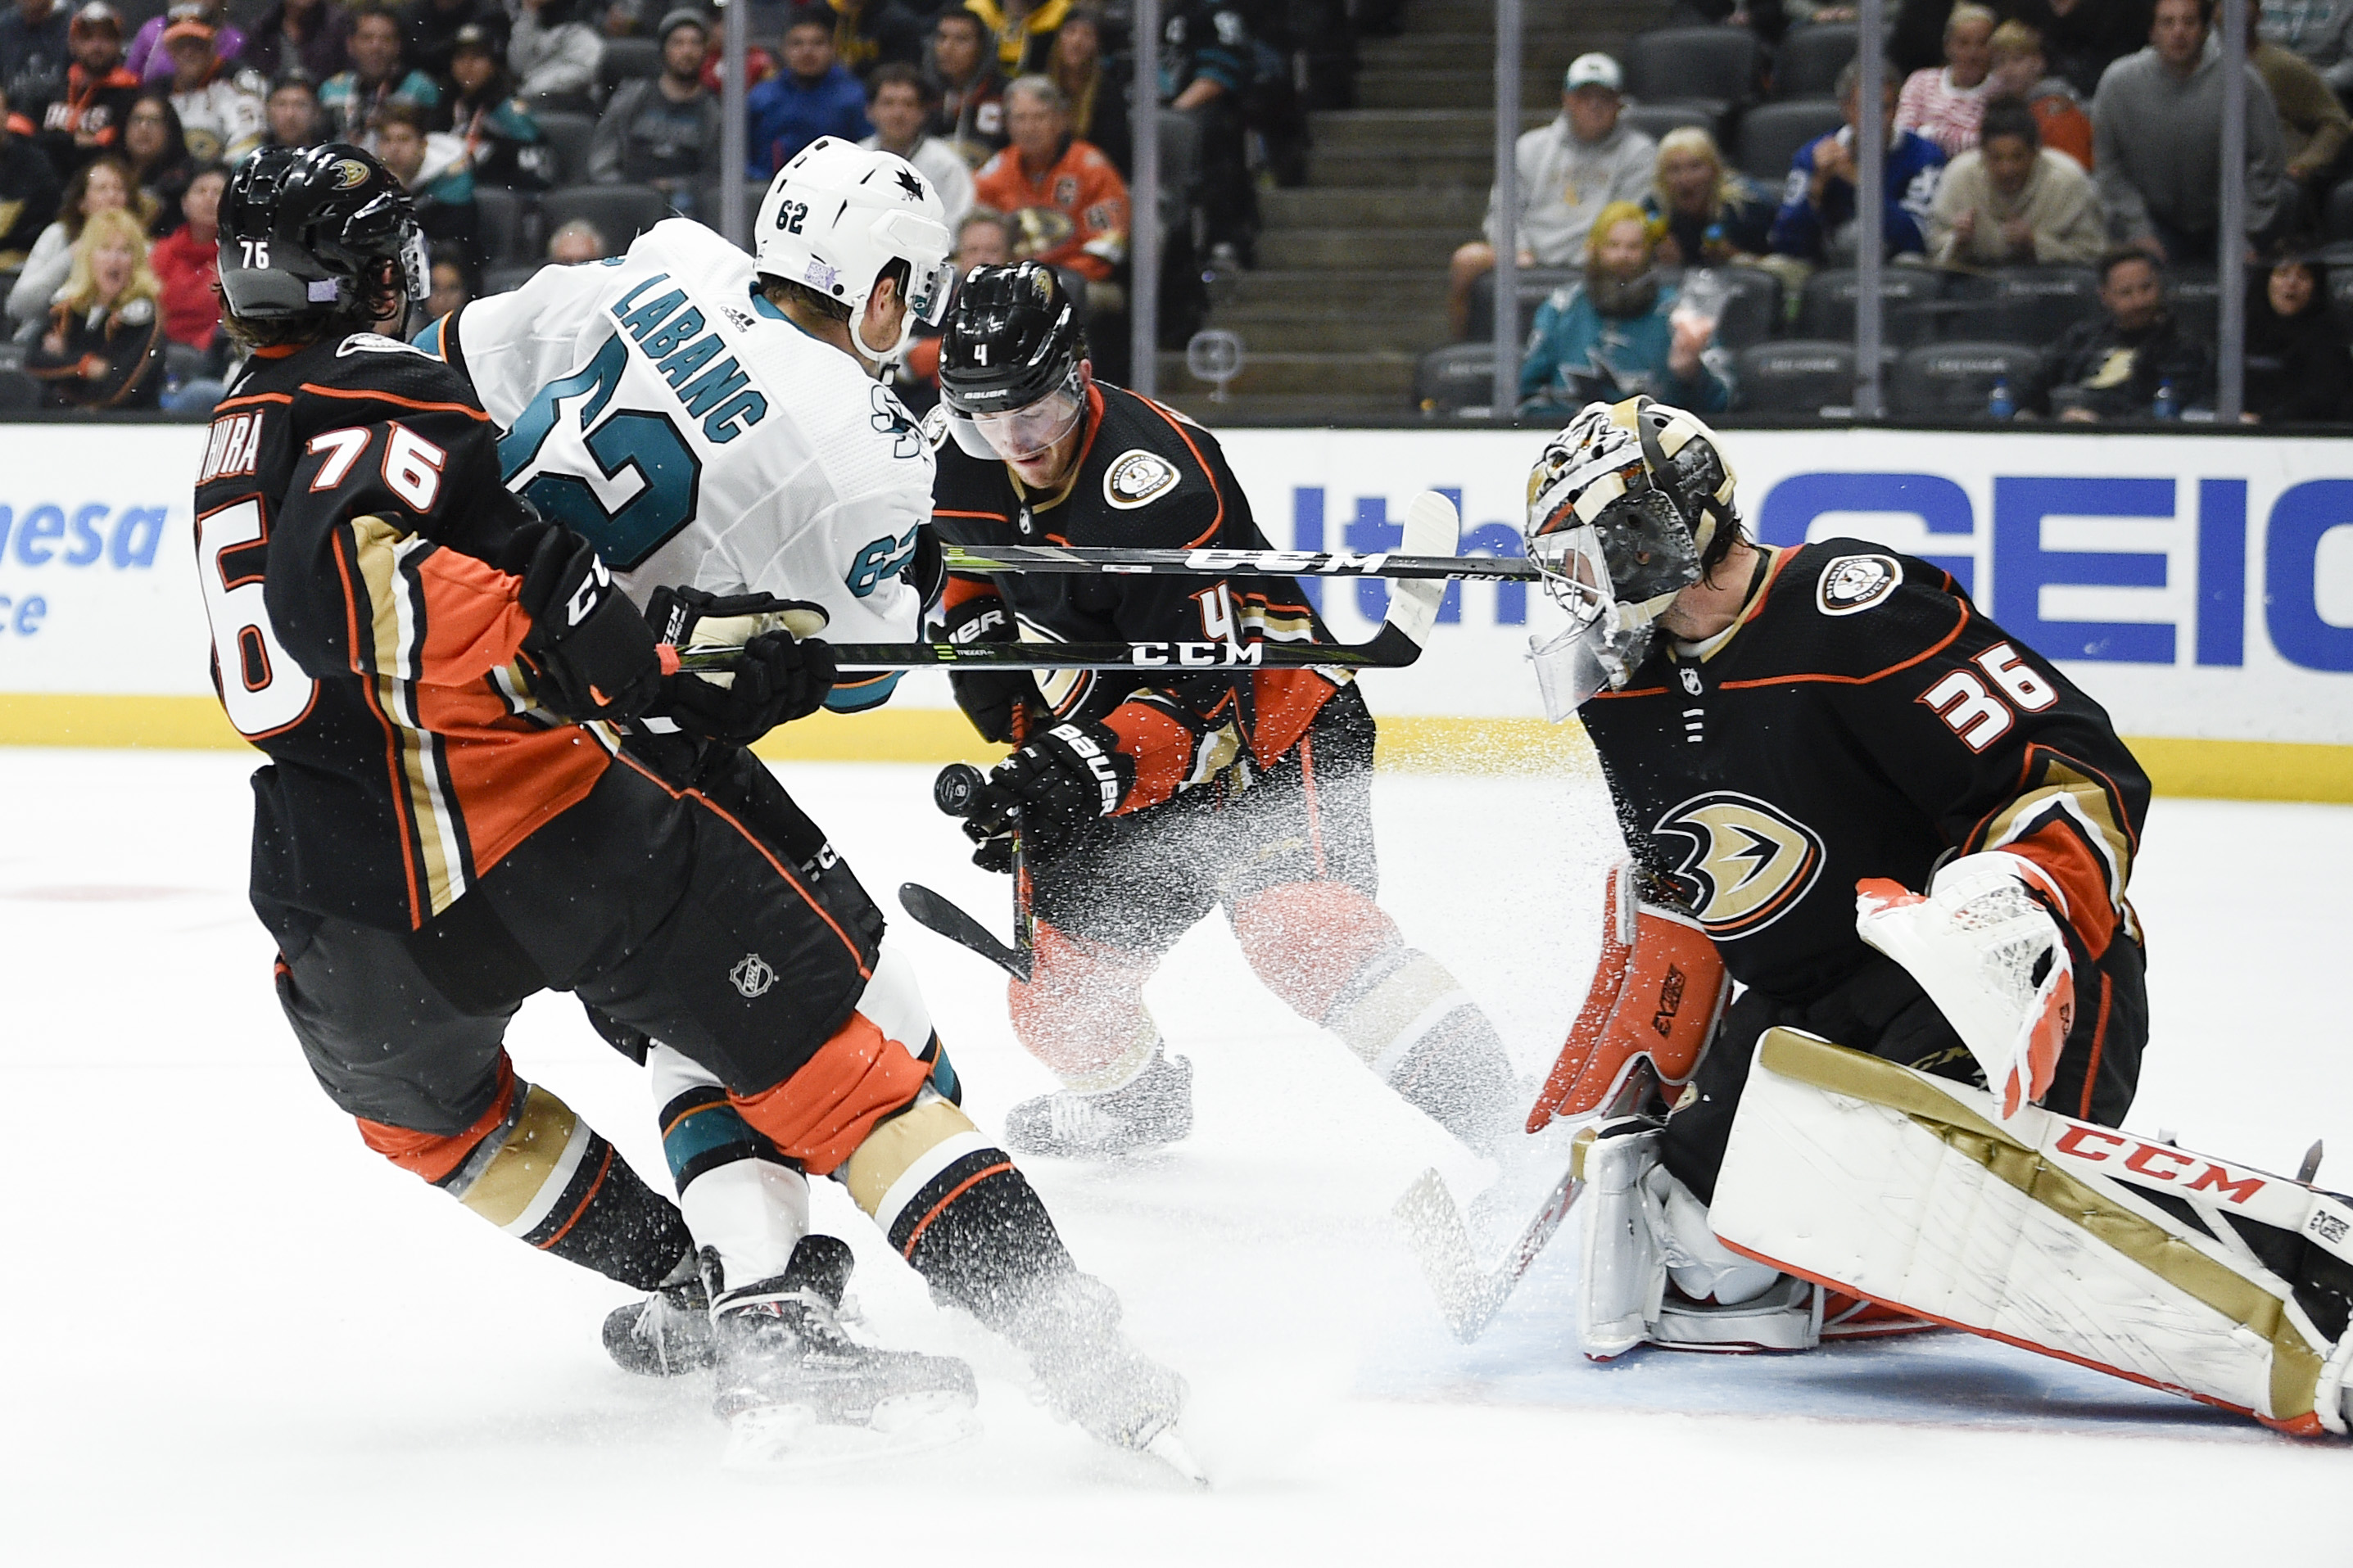 Nov 14, 2019; Anaheim, CA, USA; Anaheim Ducks defenseman Cam Fowler (4) and San Jose Sharks right wing Kevin Labanc (62) battle for the puck in front of goalie John Gibson (36) during the third period at Honda Center.